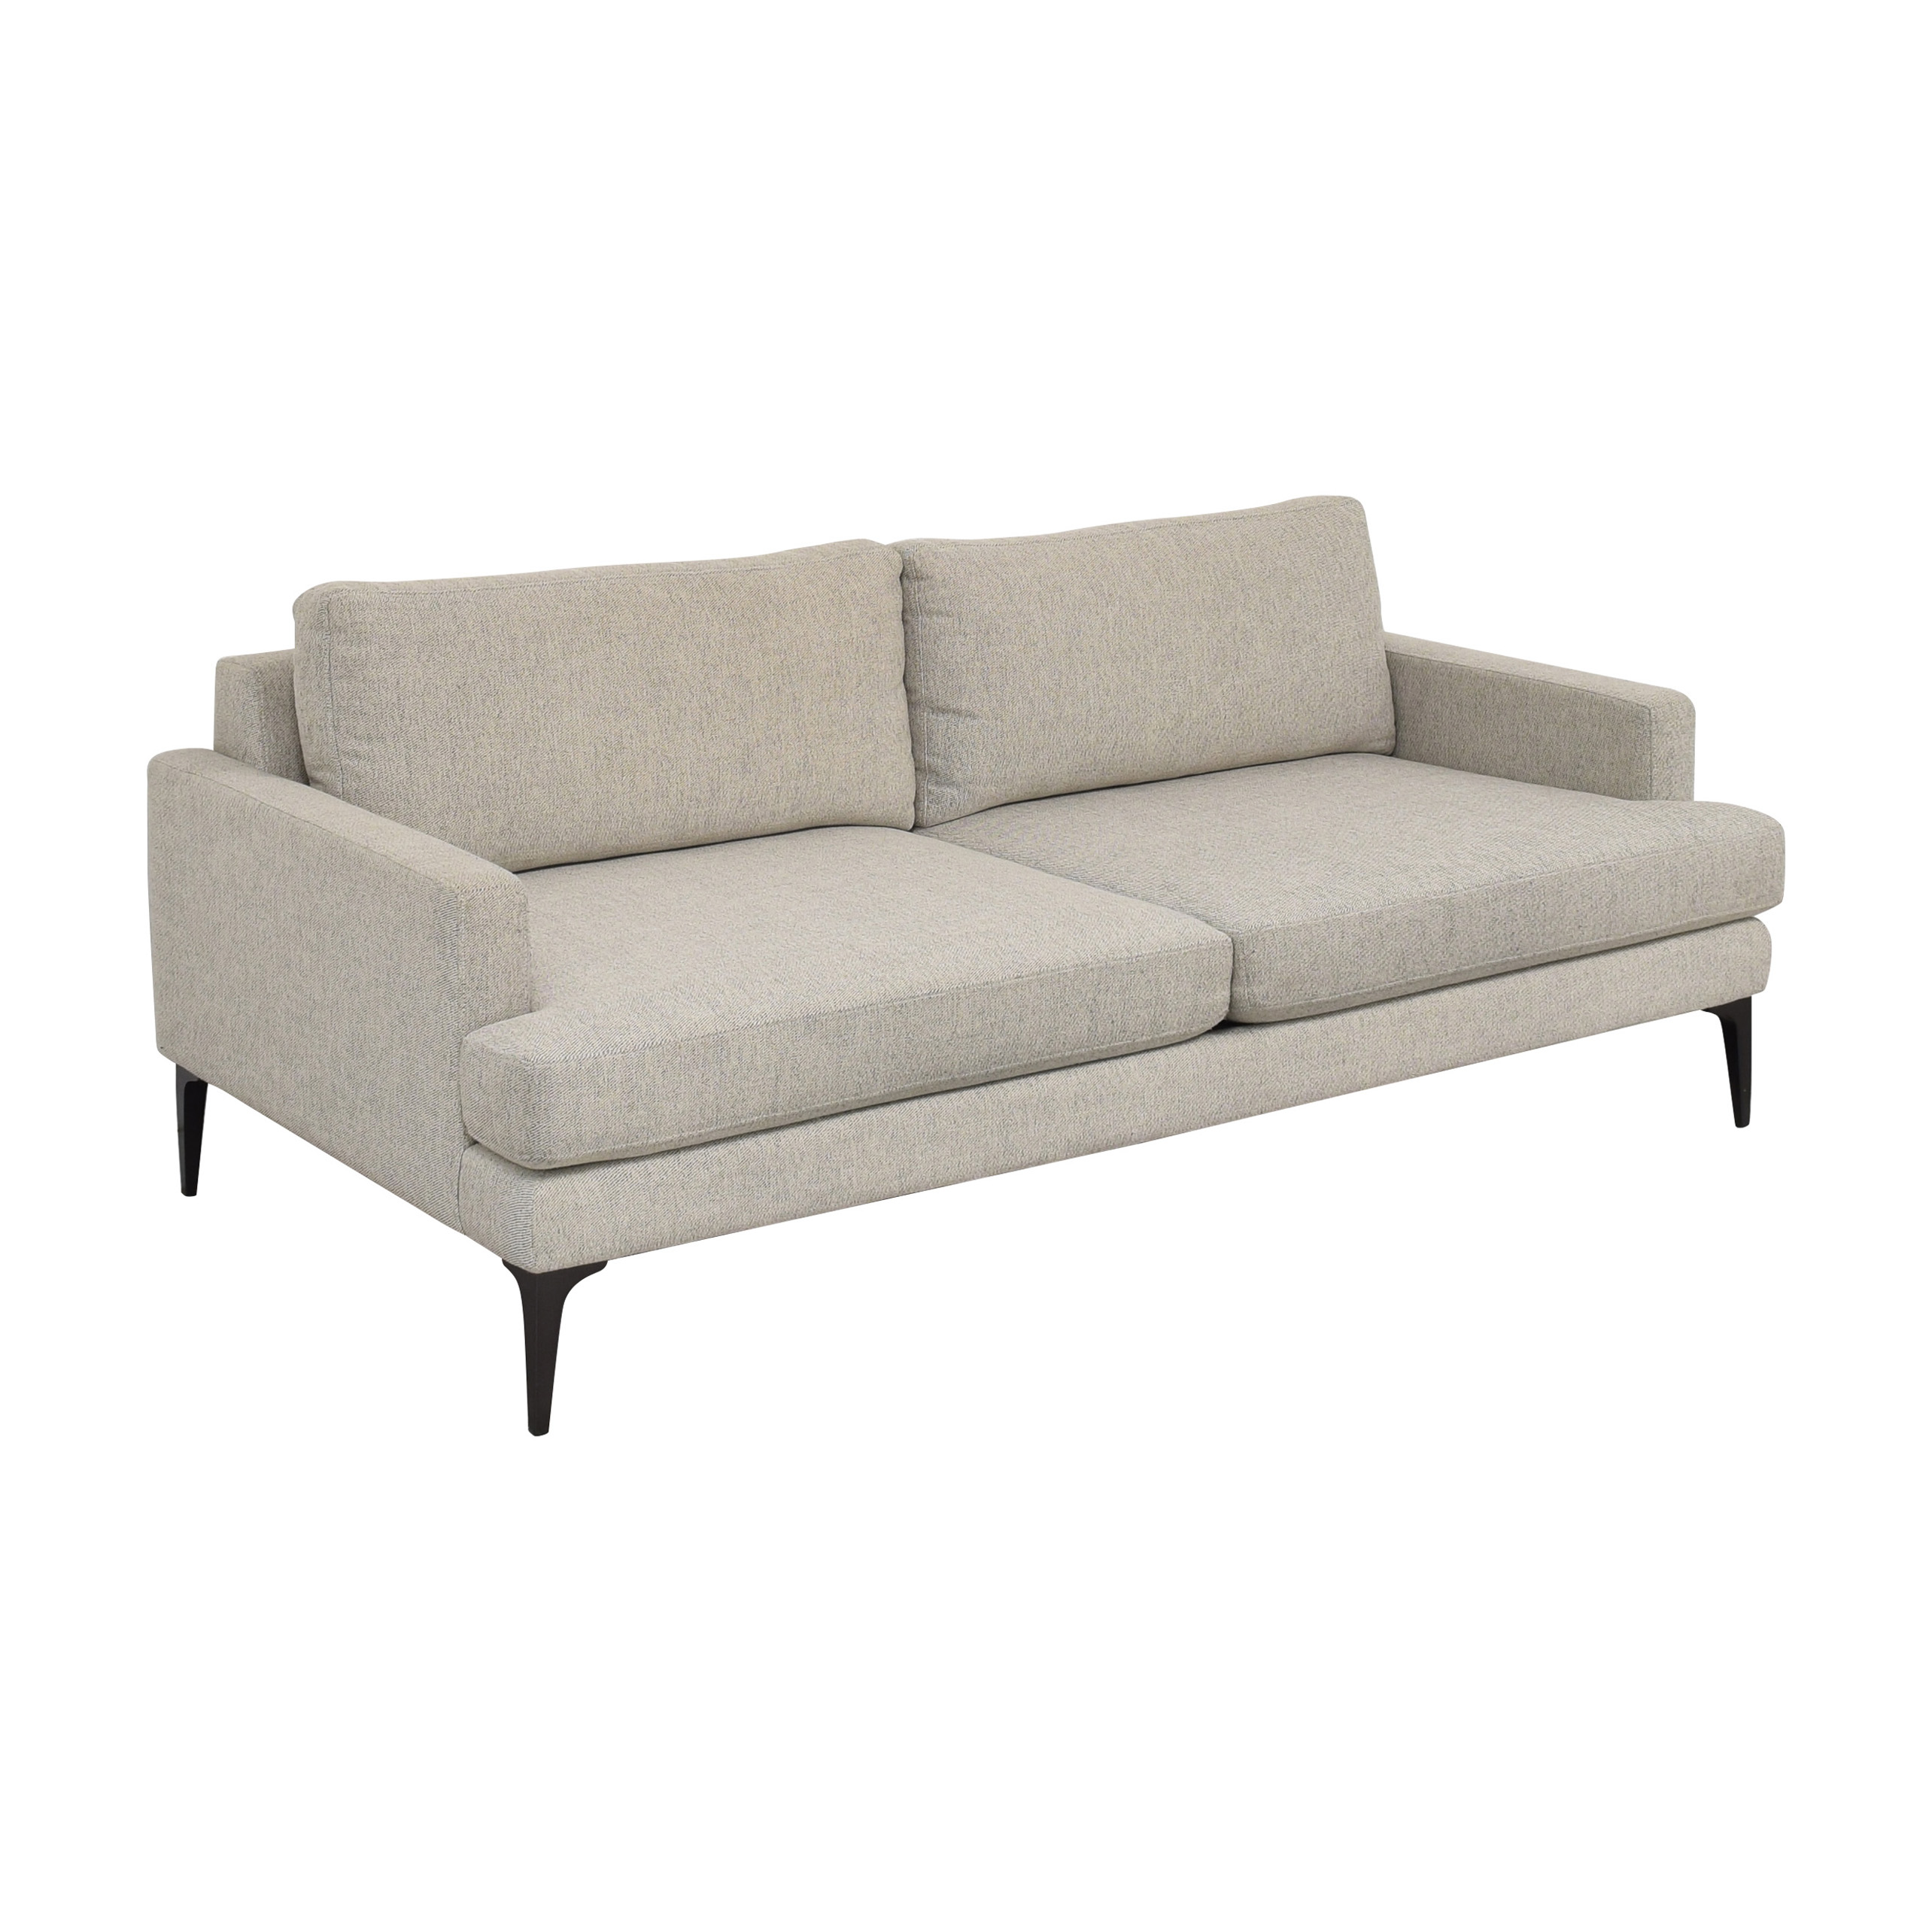 West Elm West Elm Andes Sofa nyc